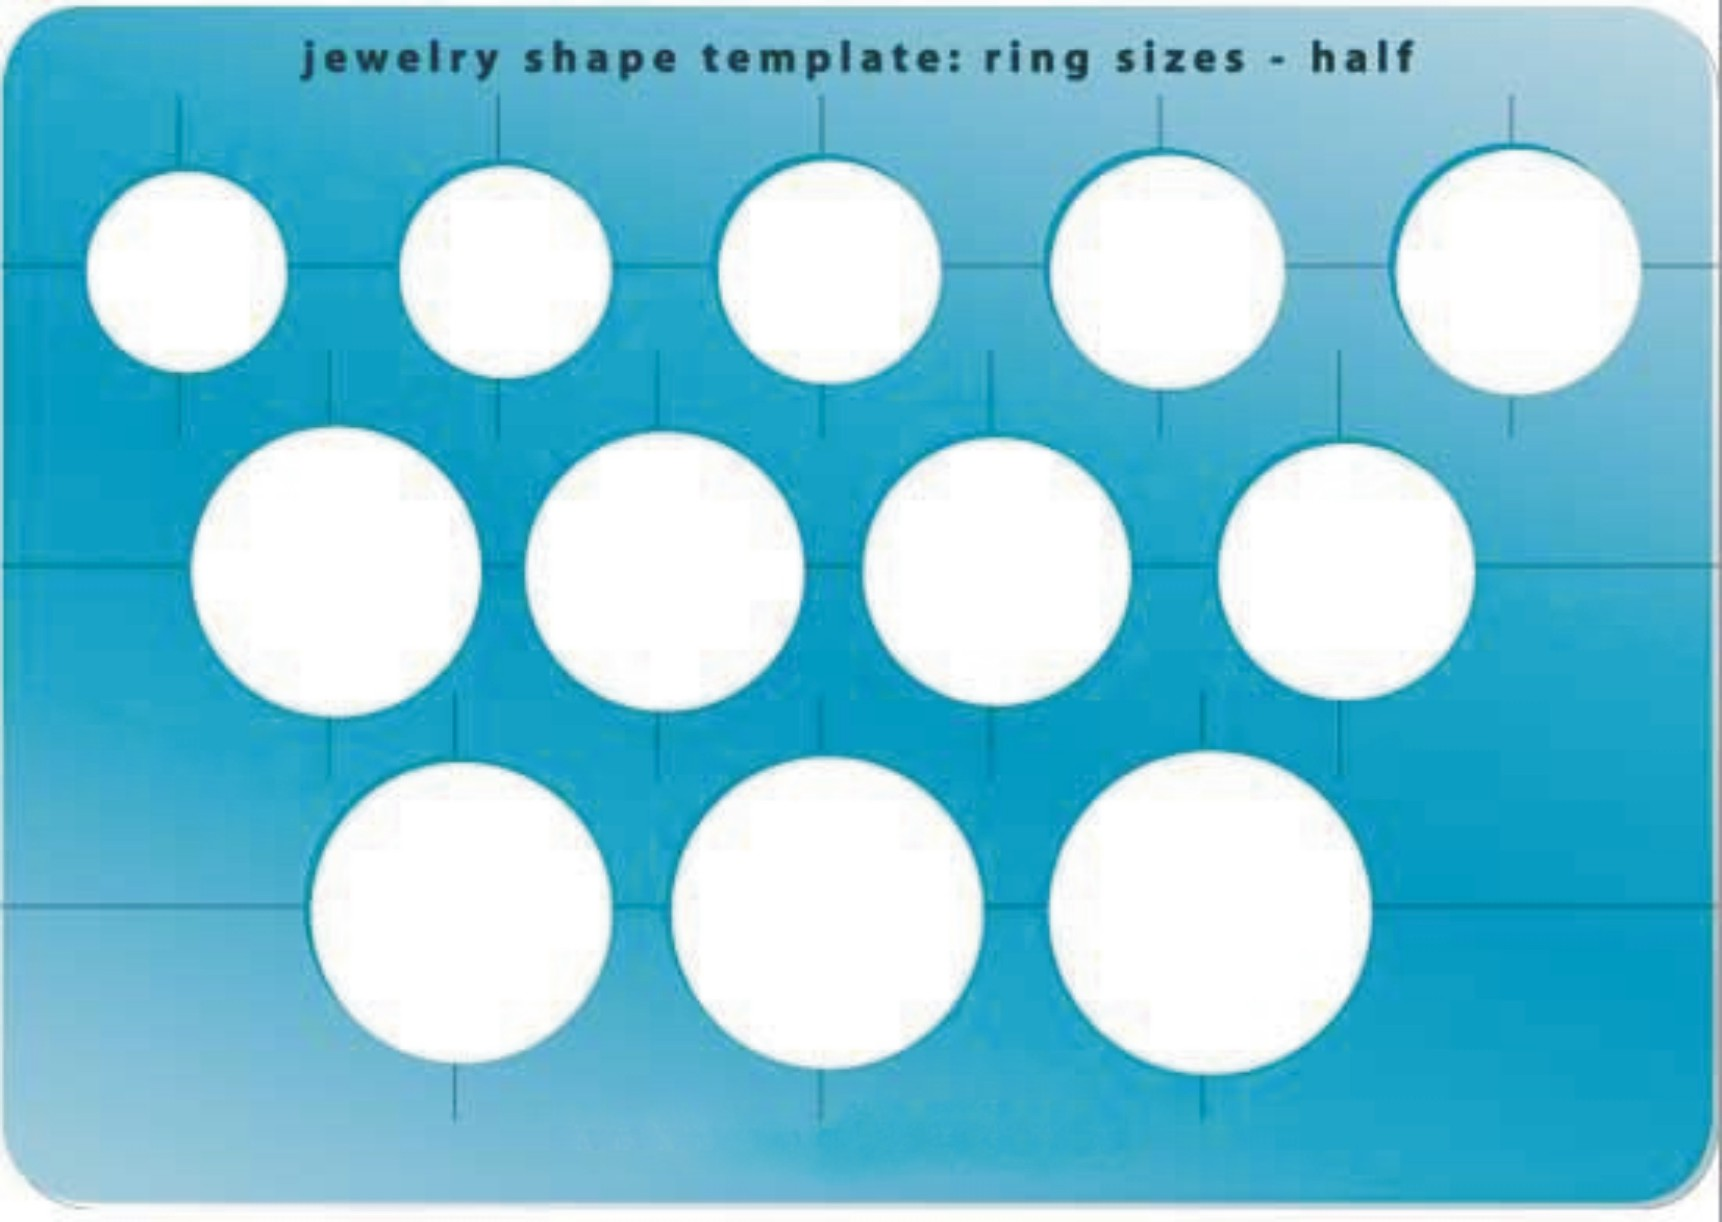 Template - Half Size Ring Shapes